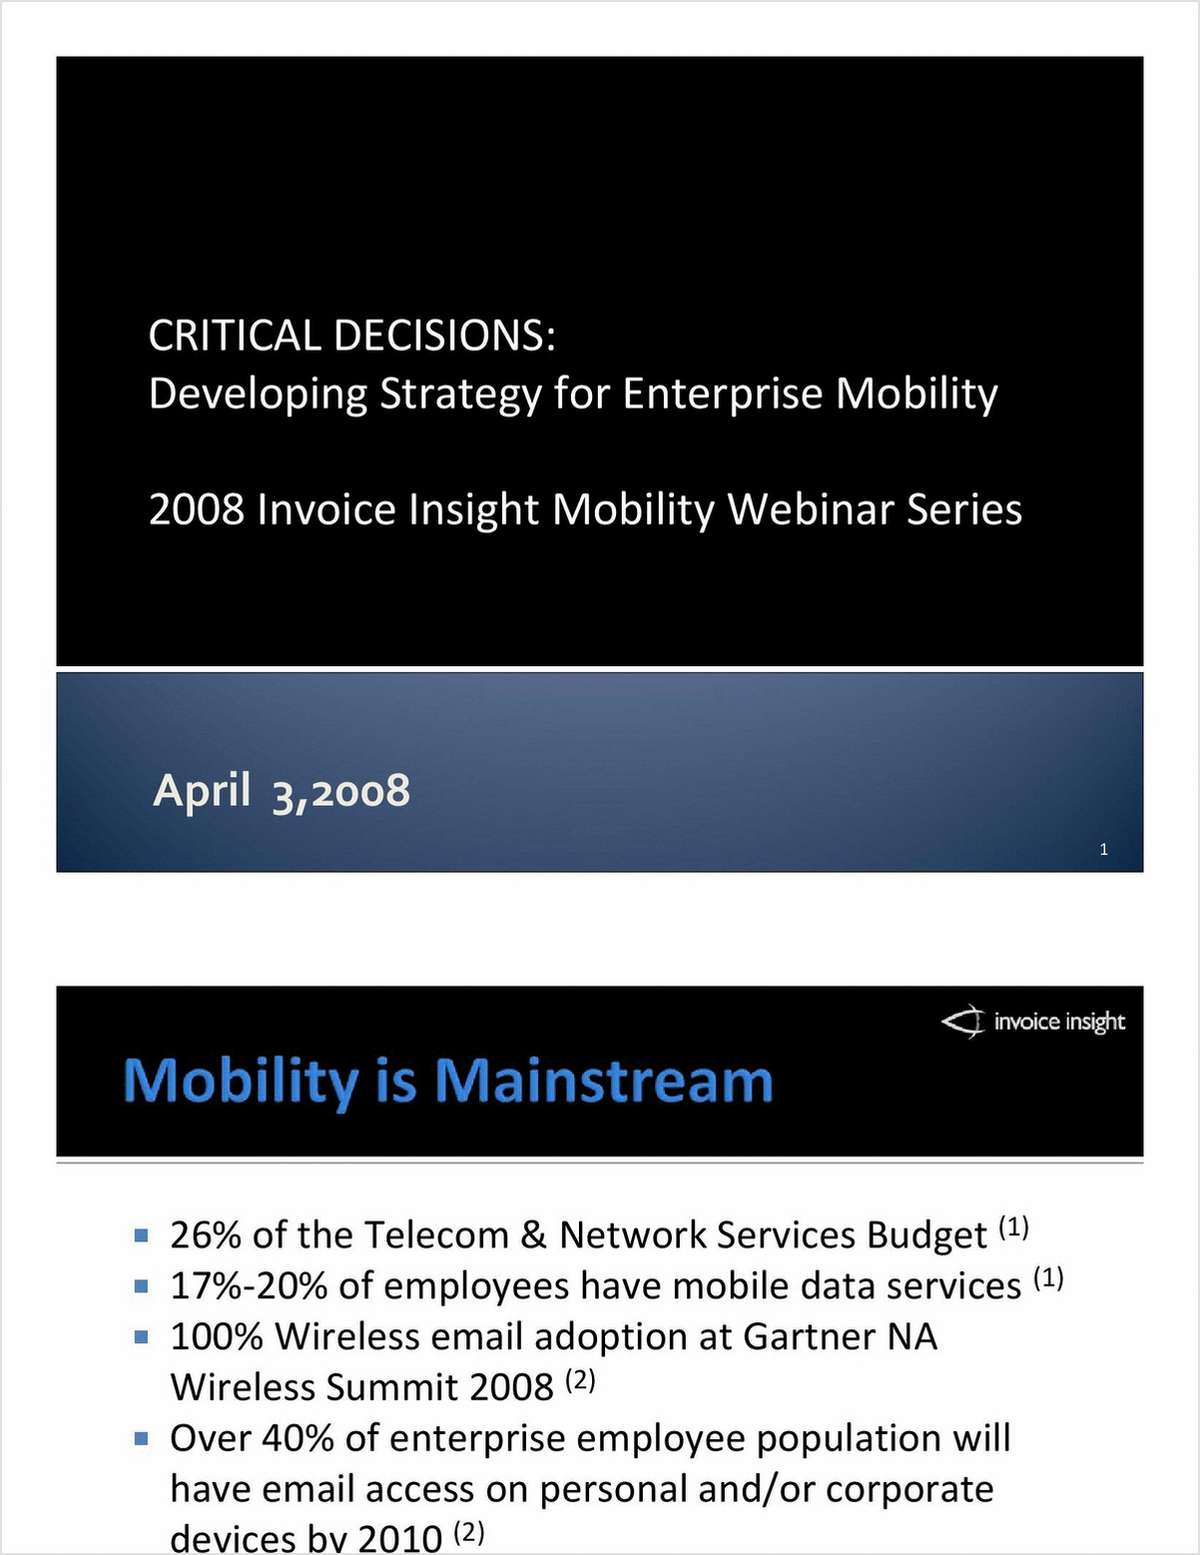 Critical Decisions: Developing Strategy for Enterprise Mobility